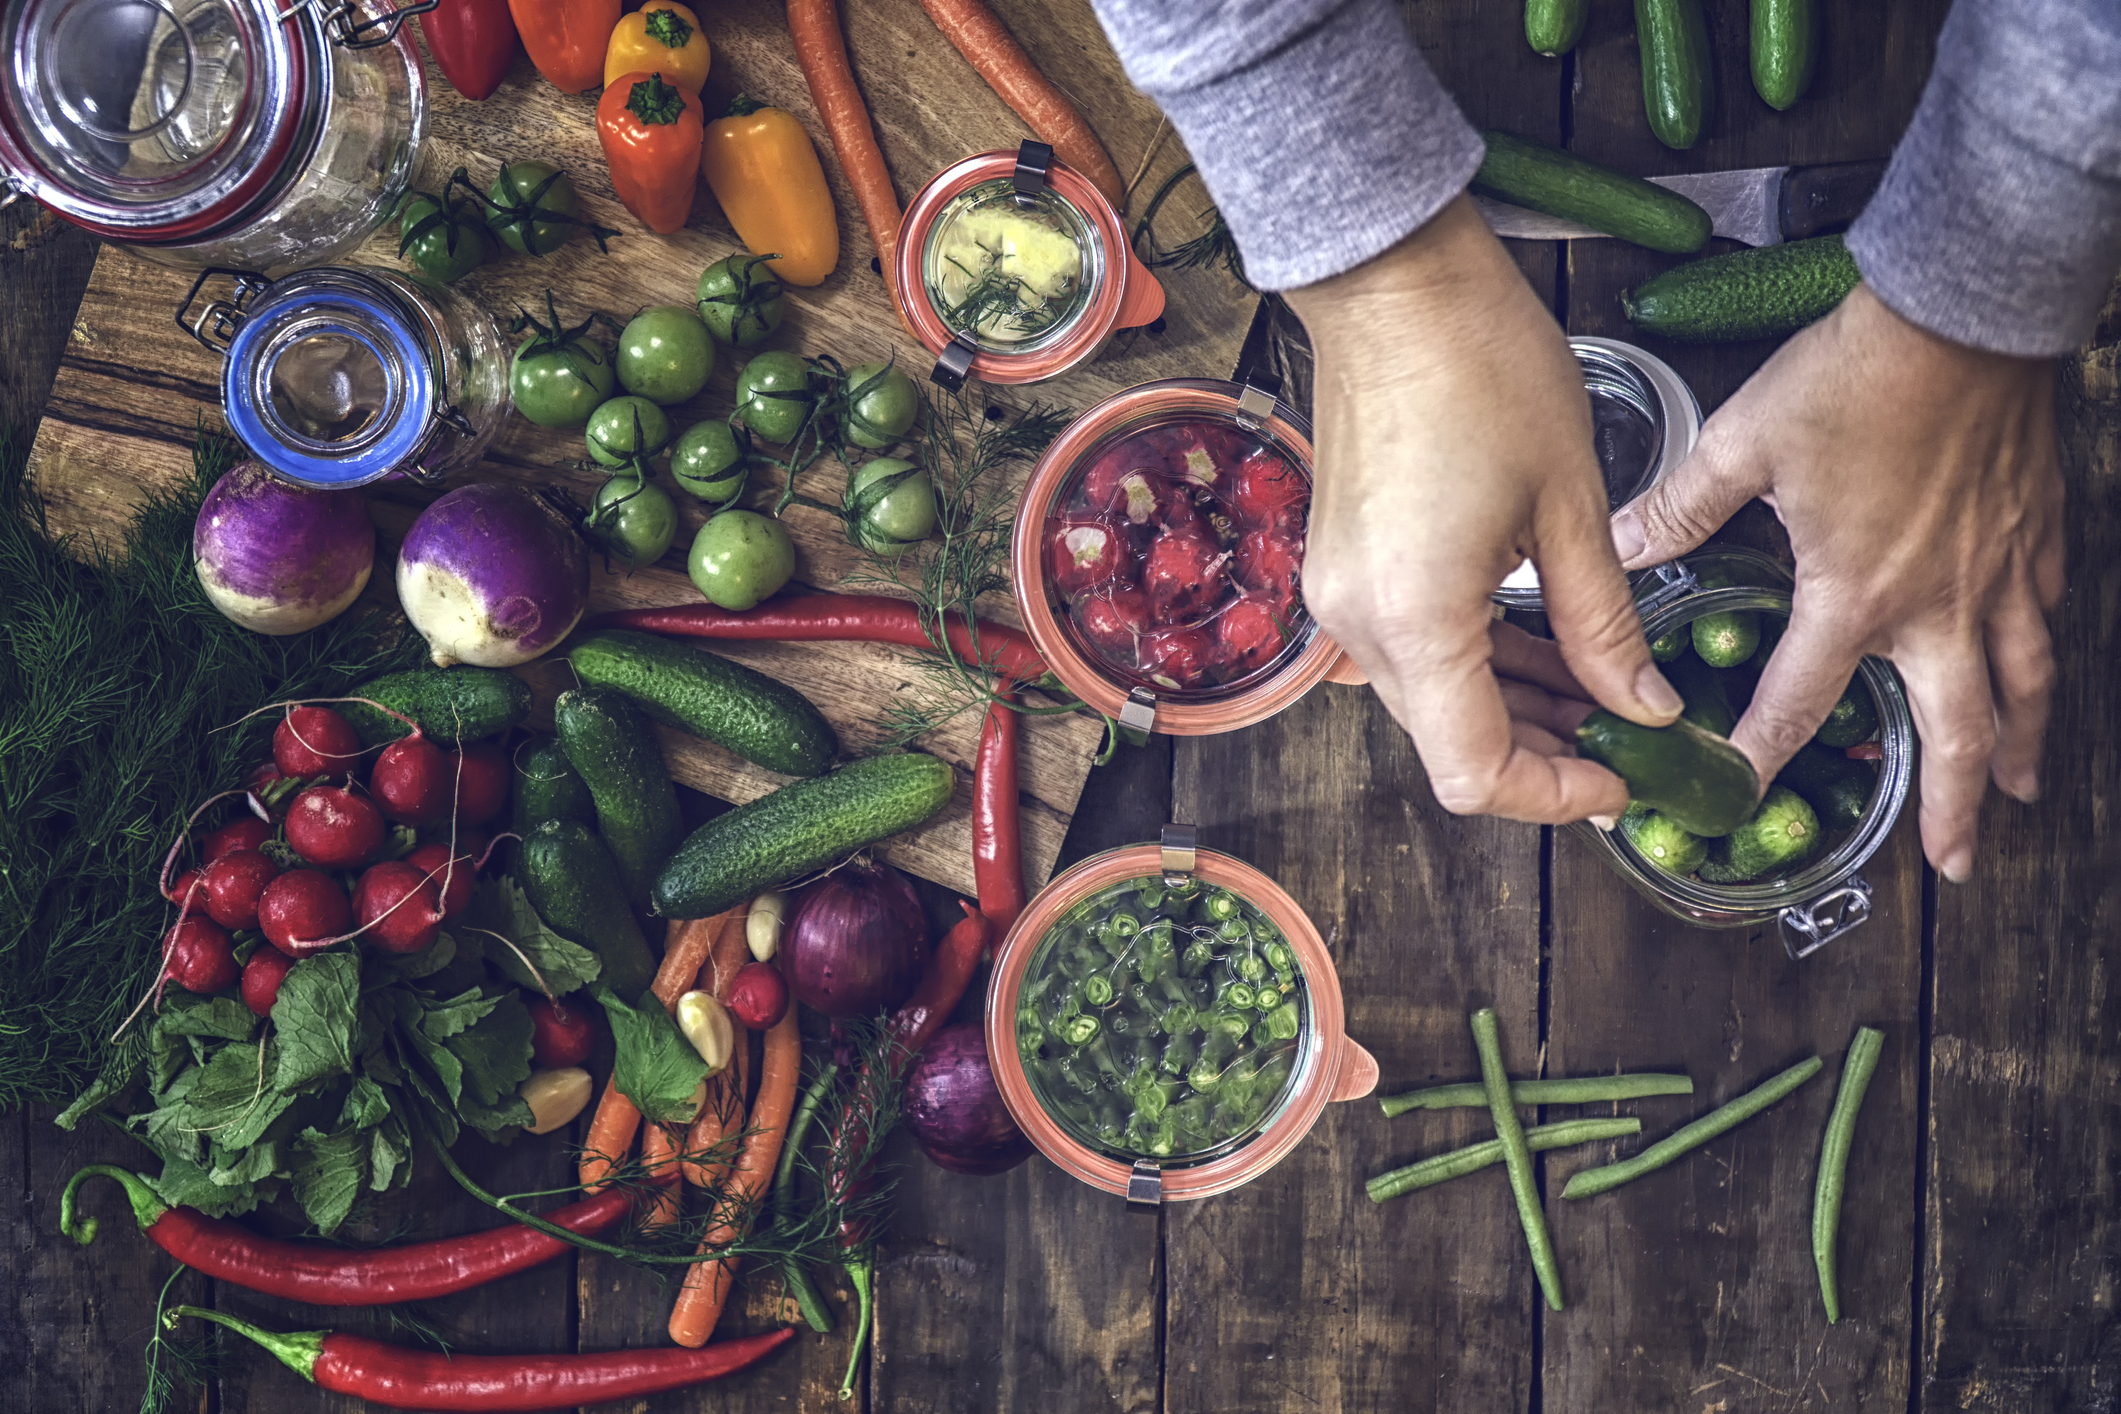 Preserving and canning food and vegetables in jars like carrots, cucumbers, tomatoes, chilis, paprika and radishes.